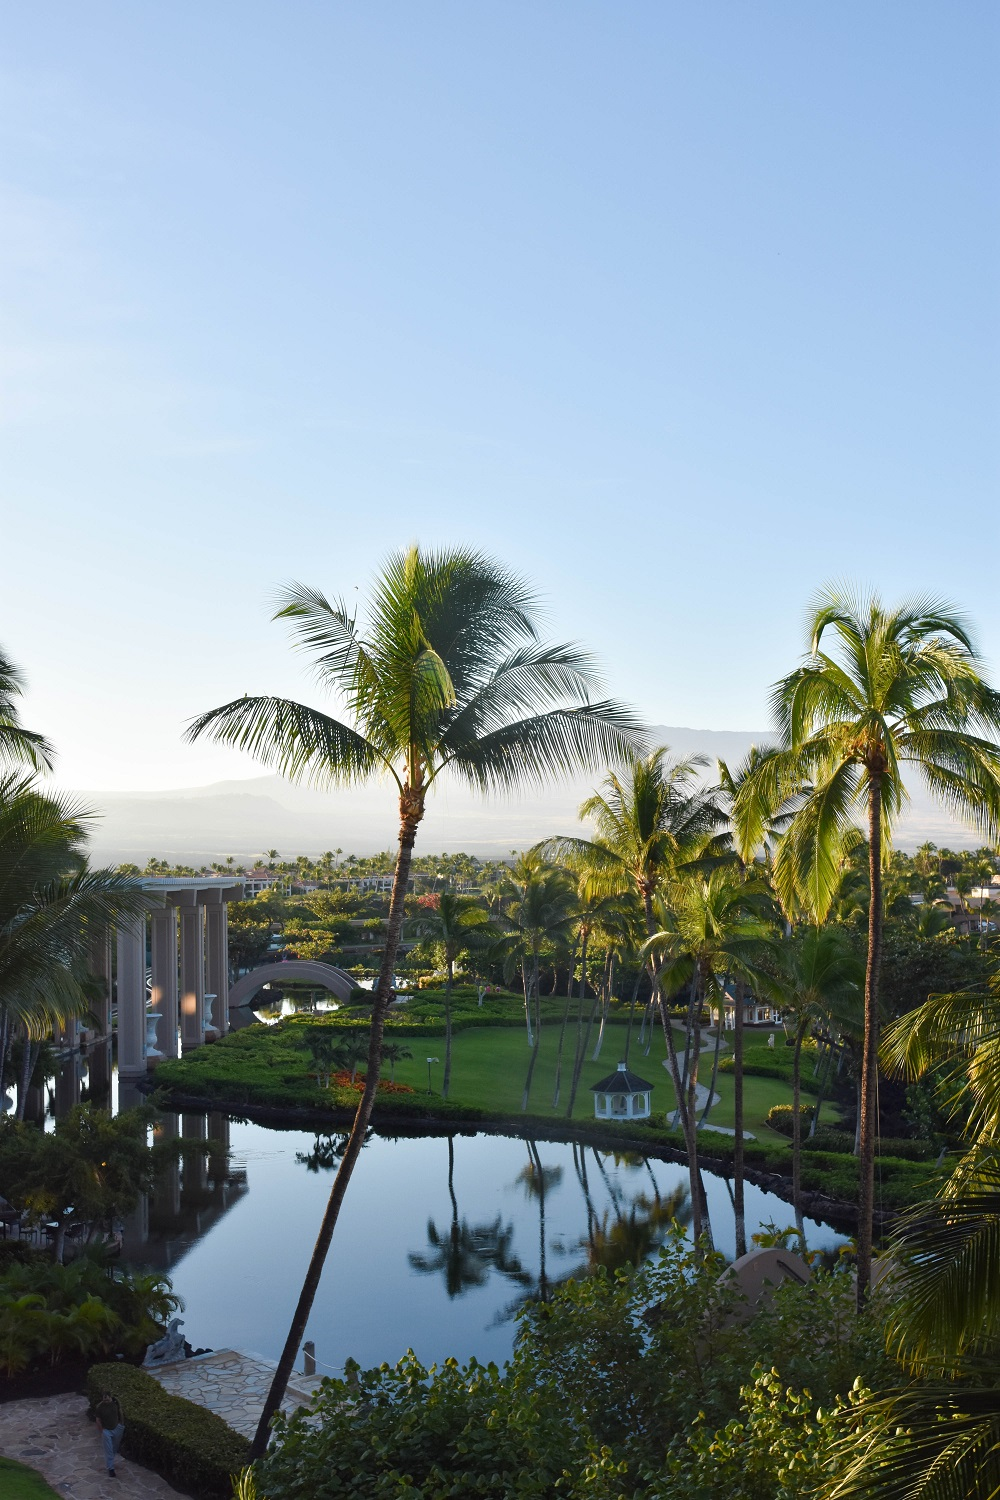 Our Stay at the Hilton Waikoloa Village Resort in Hawaii